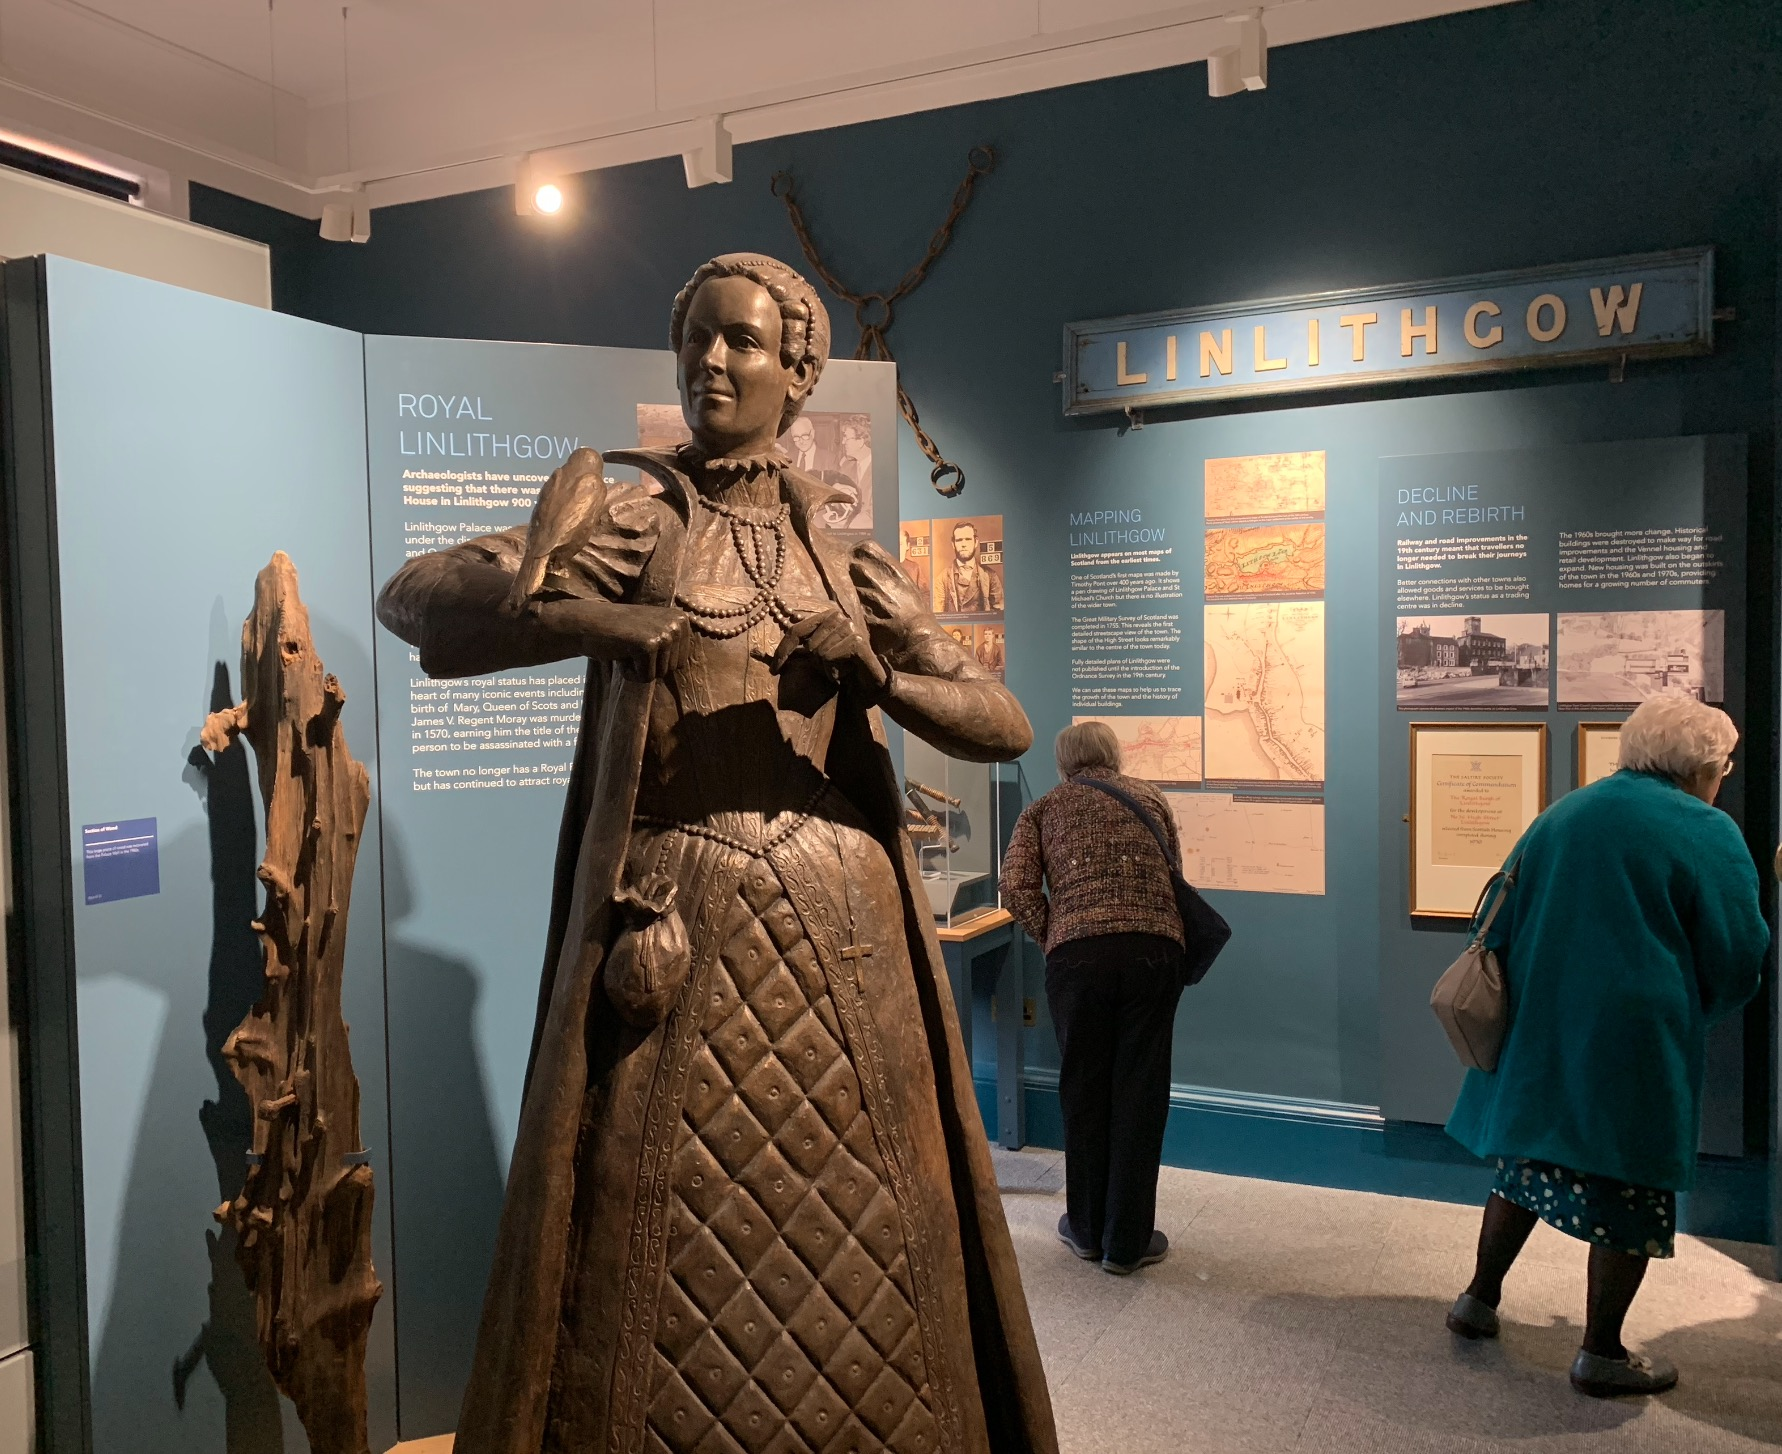 GALLERY 1 - CIVIC LIFE - Learn about civic life in Linlithgow and celebrate the town's rich royal heritage. This gallery features our stunning Mary, Queen of Scots statue, which was the first life-size statue of her to be commissioned in Scotland.